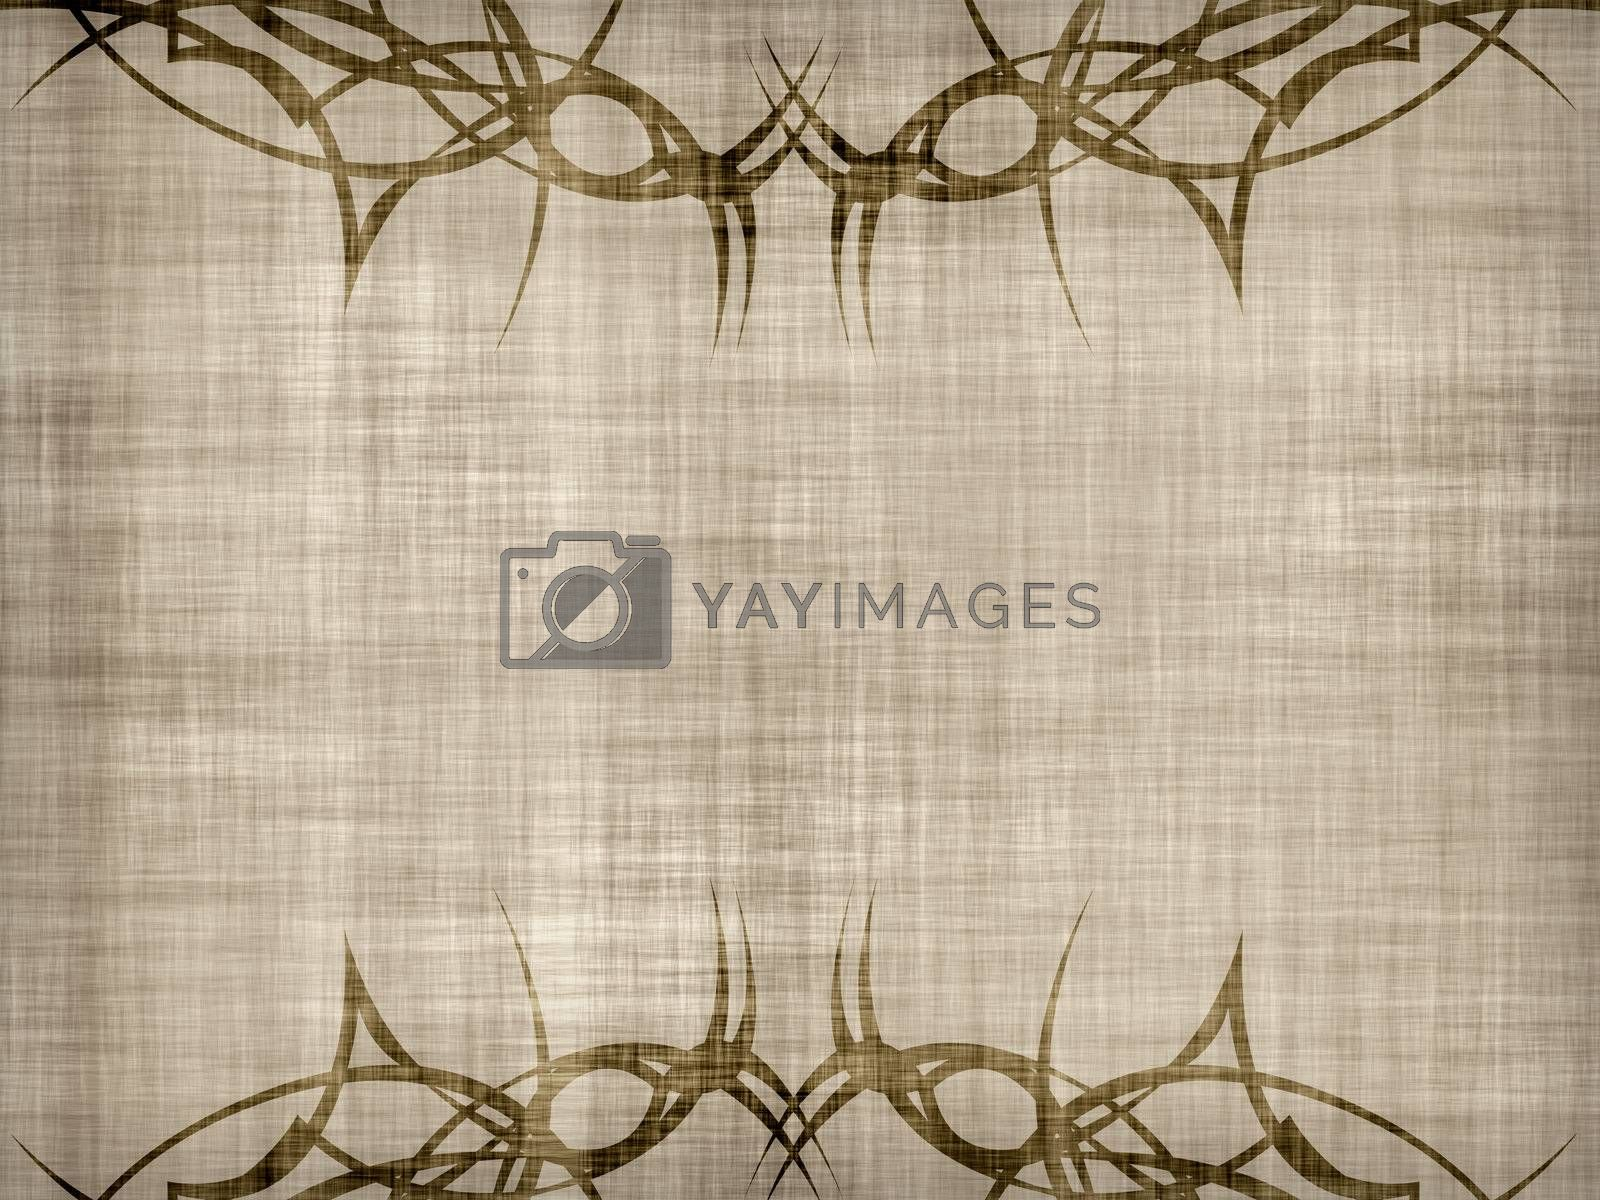 Grungy and dirty background with vintage ornaments